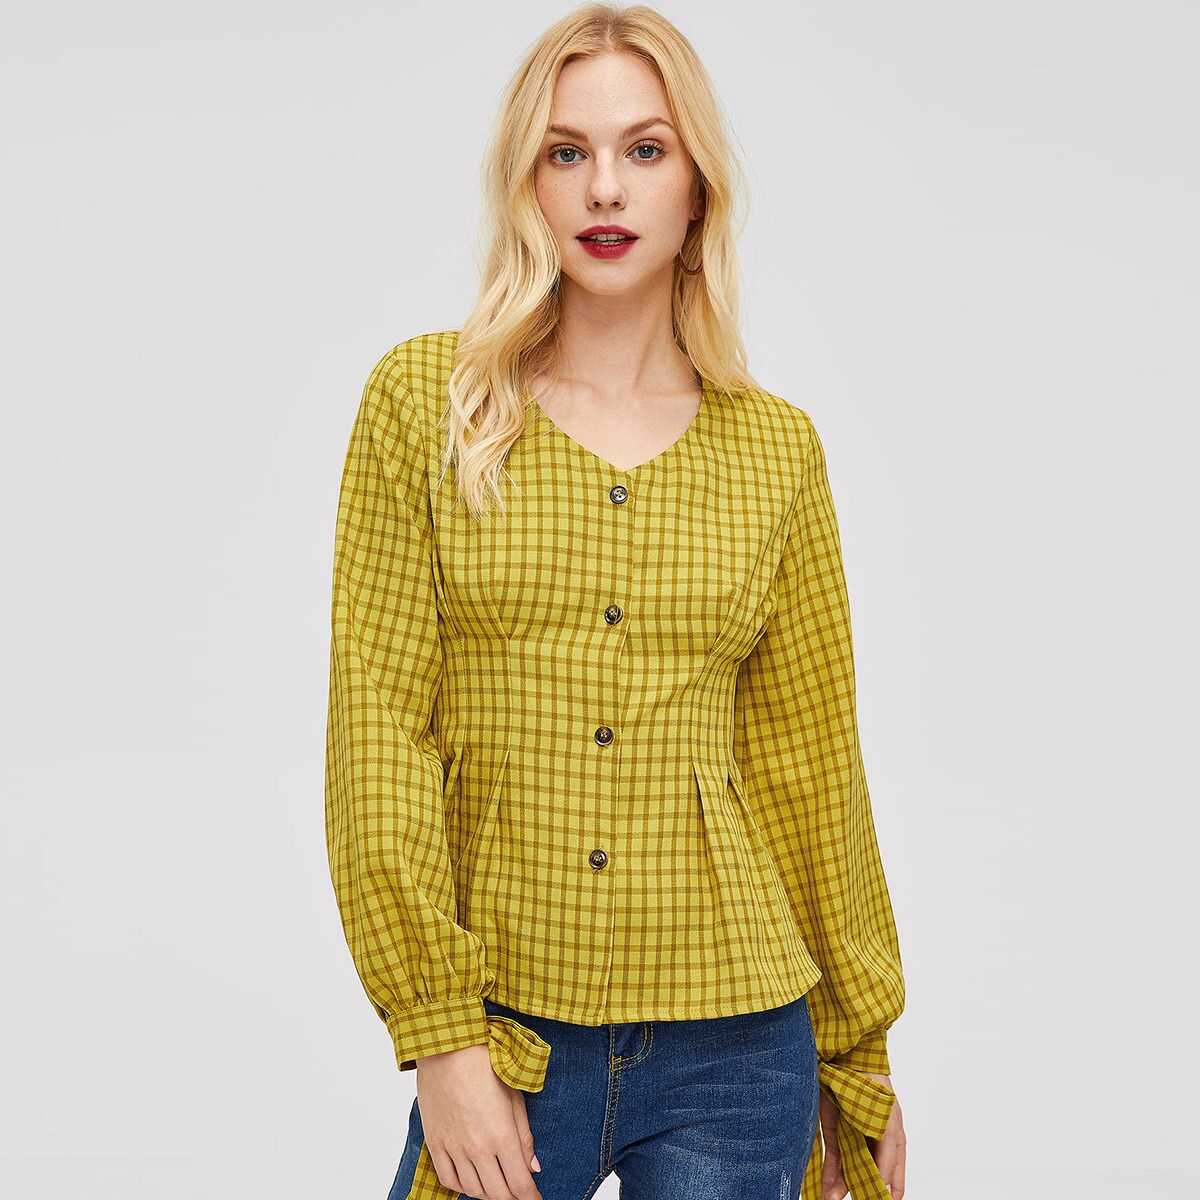 Knot Cuff Pleated Detail Buttoned Plaid Blouse - Shein - GOOFASH